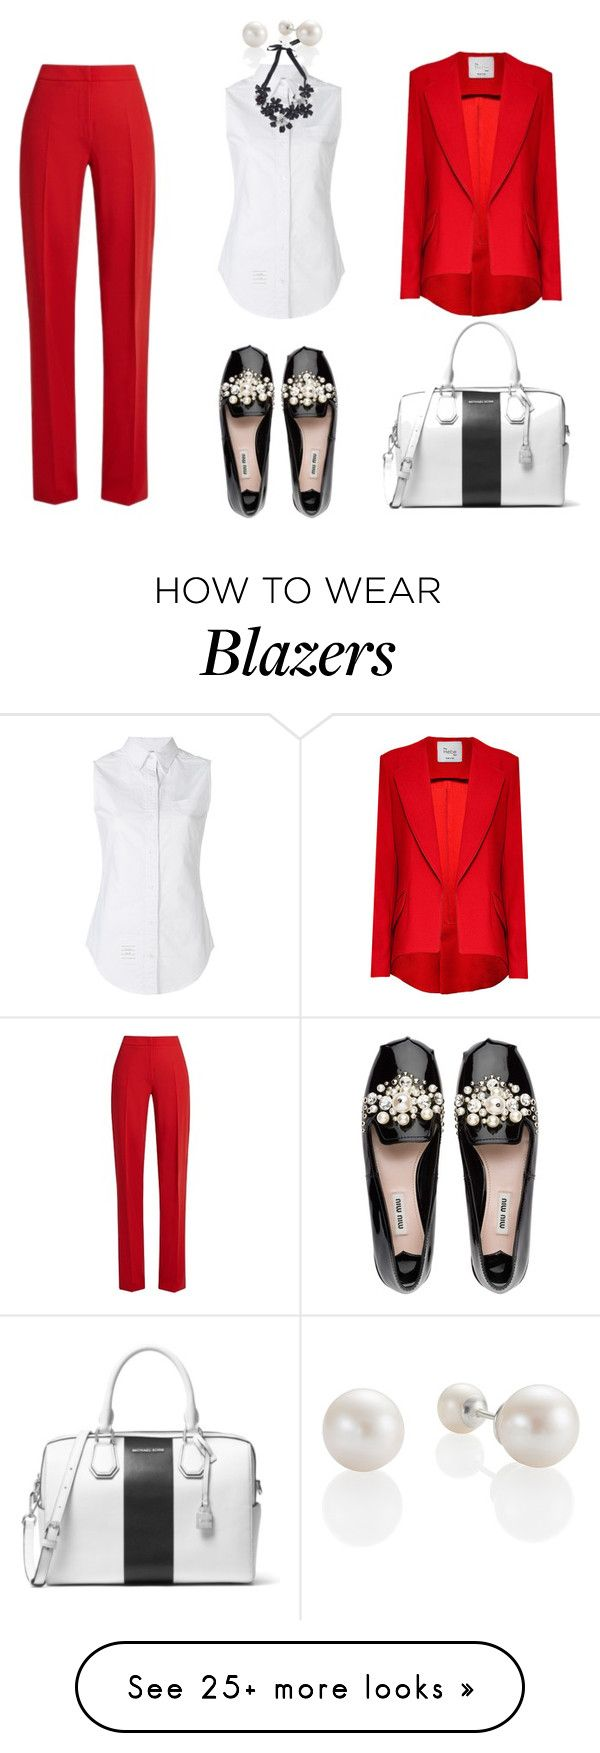 """BOLD AND ON TOP"" by underestimated10 on Polyvore featuring MaxMara, Thom Browne, Hebe Studio, Forest of Chintz, Miu Miu and MICHAEL Michael Kors"